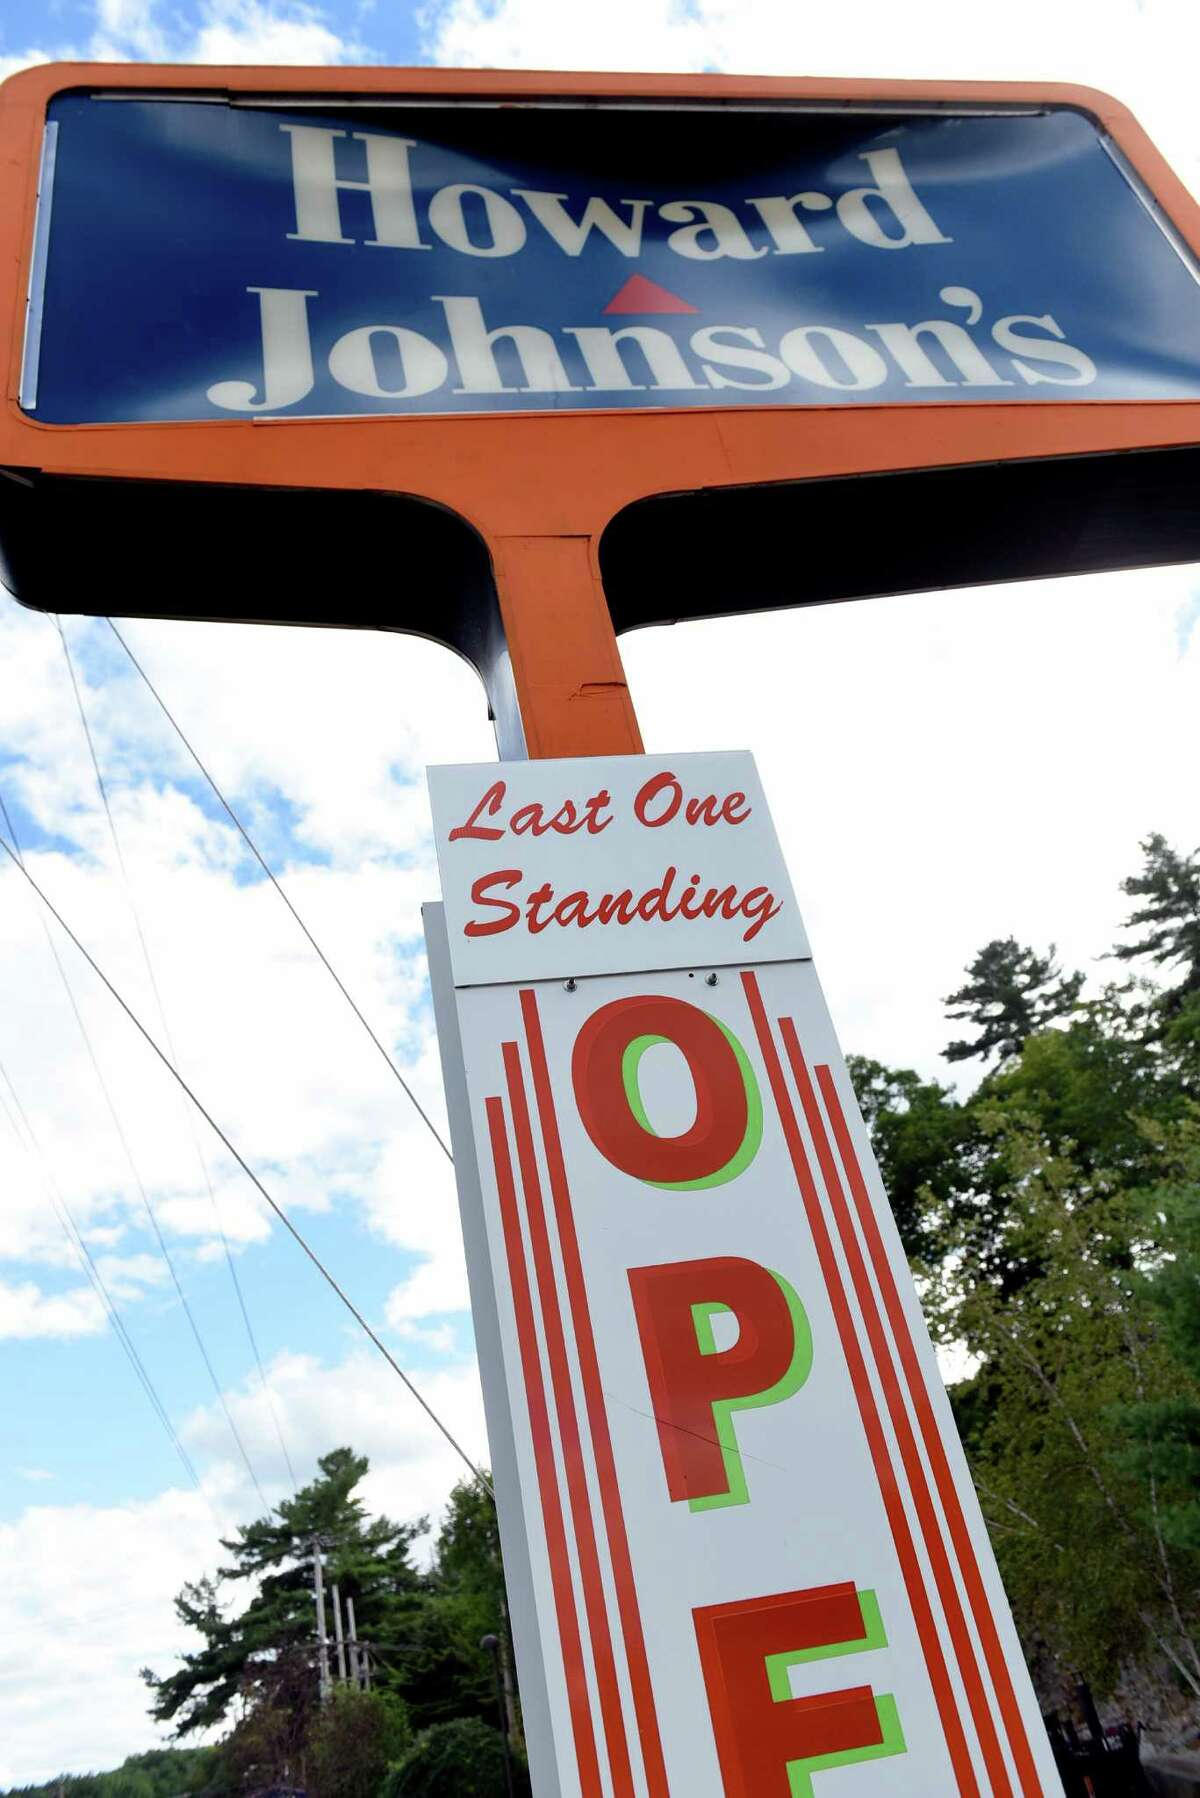 The sign has an added message on Thursday, Sept. 1, 2016, at Howard Johnson's restaurant in Lake George Village, N.Y. After Labor Day weekend, this Howard Johnson's will be the last of its kind in the country. (Cindy Schultz / Times Union)